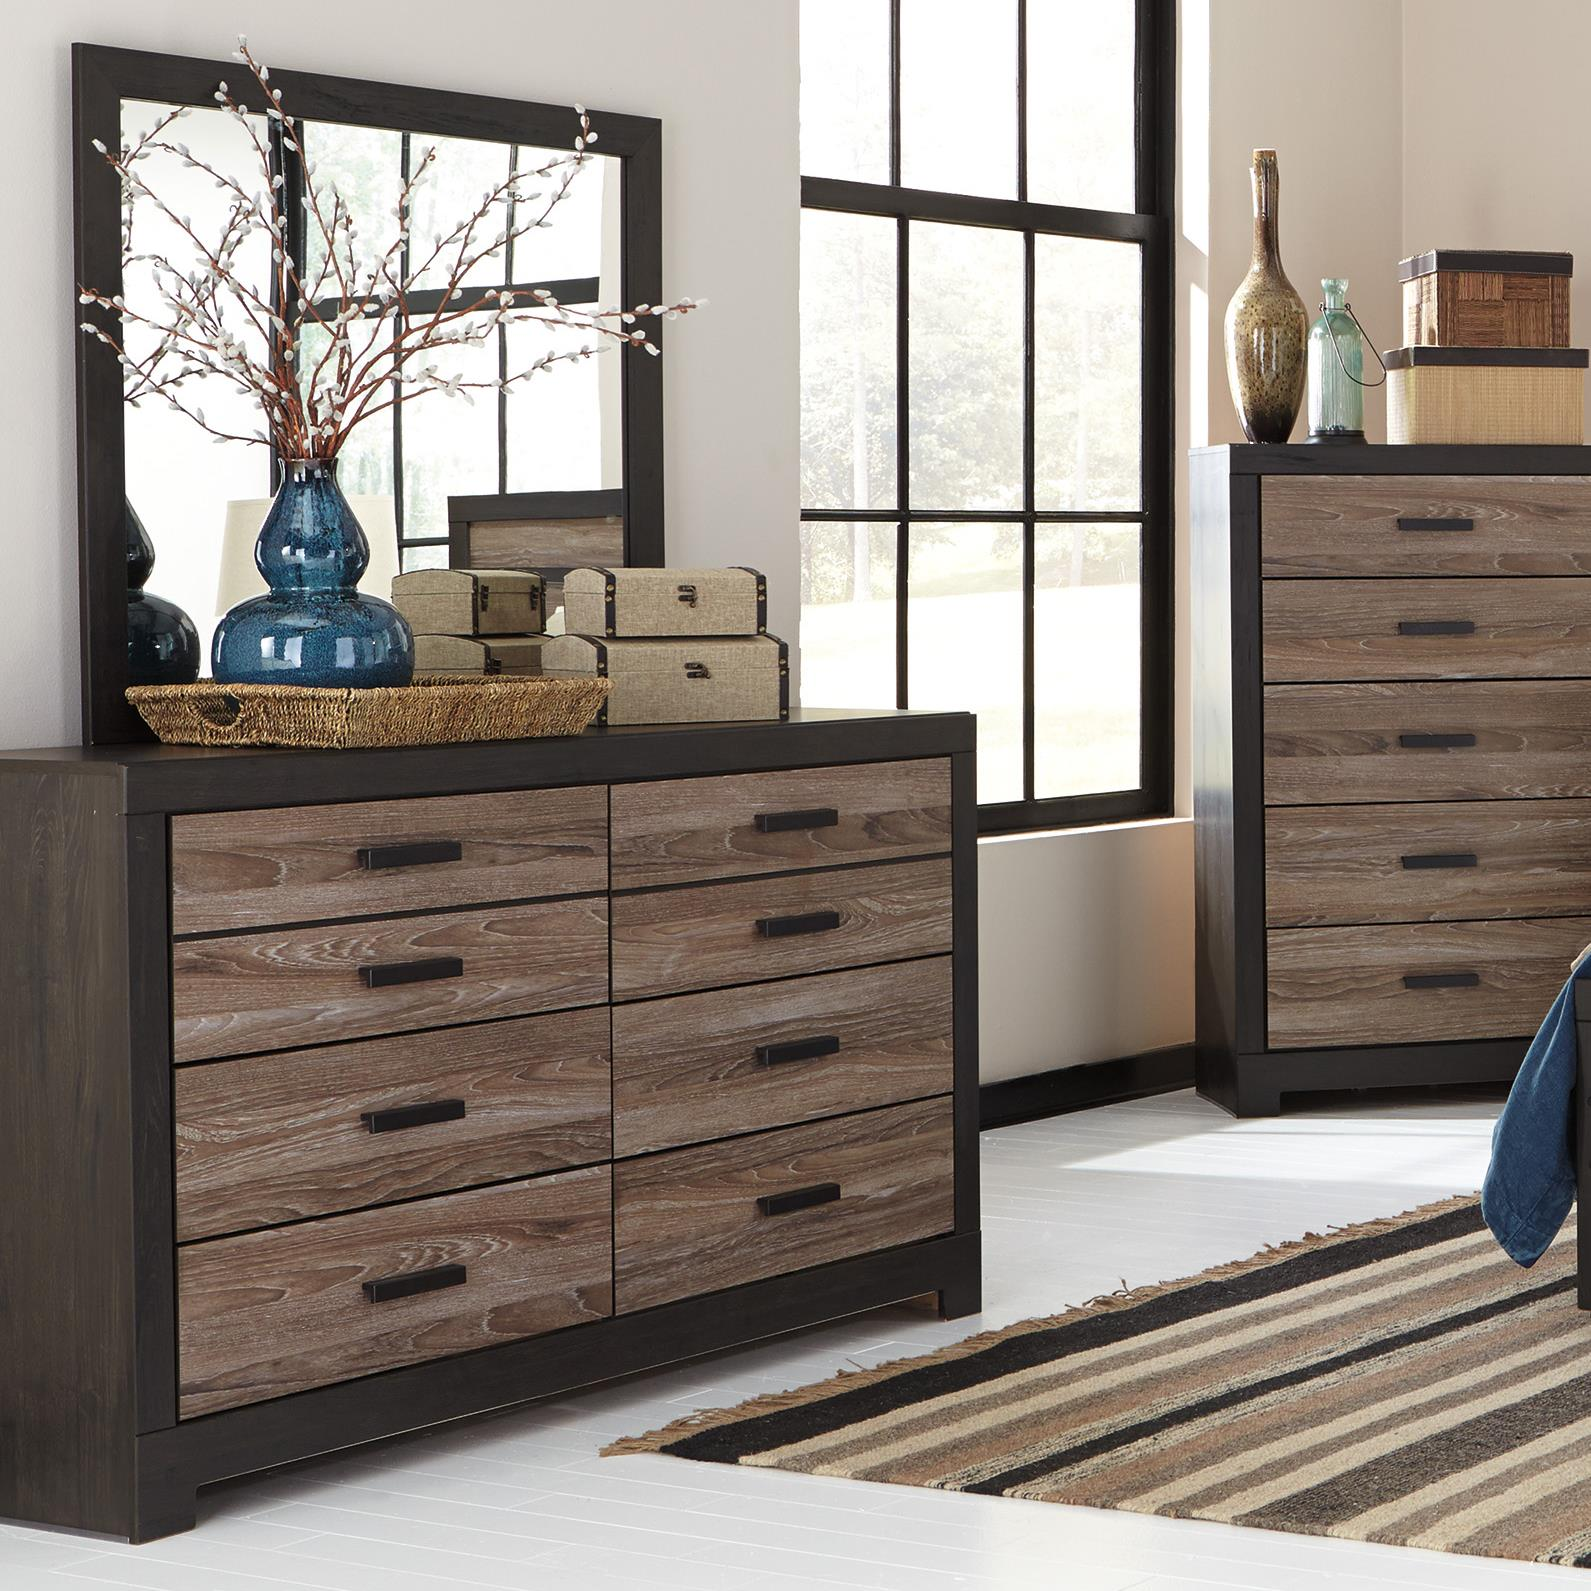 signature design by ashley harlinton rustic two tone dresser bedroom mirror furniture and. Black Bedroom Furniture Sets. Home Design Ideas